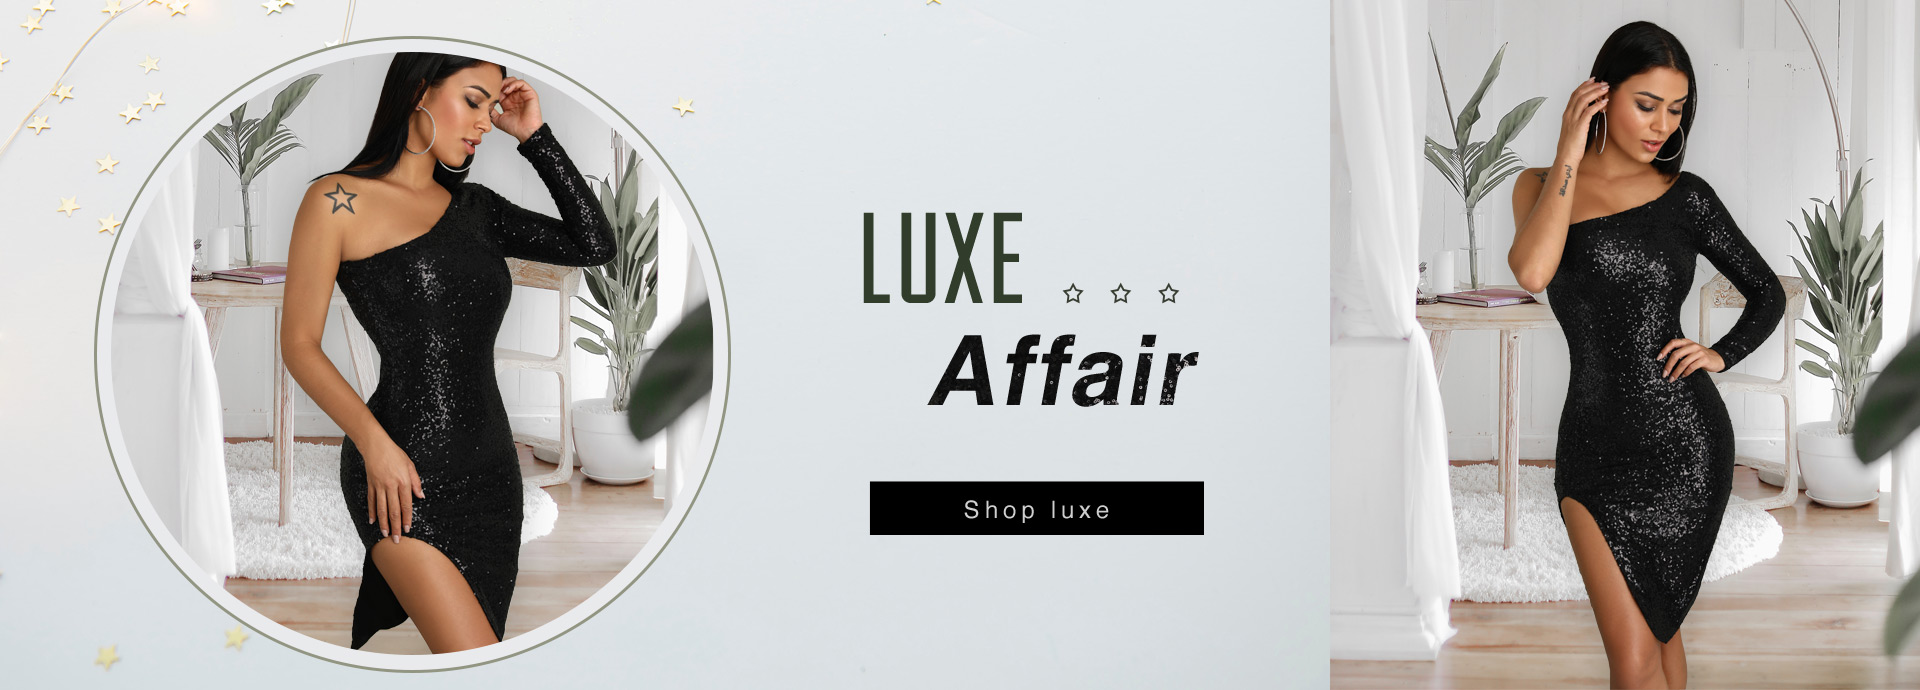 Luxe Affair